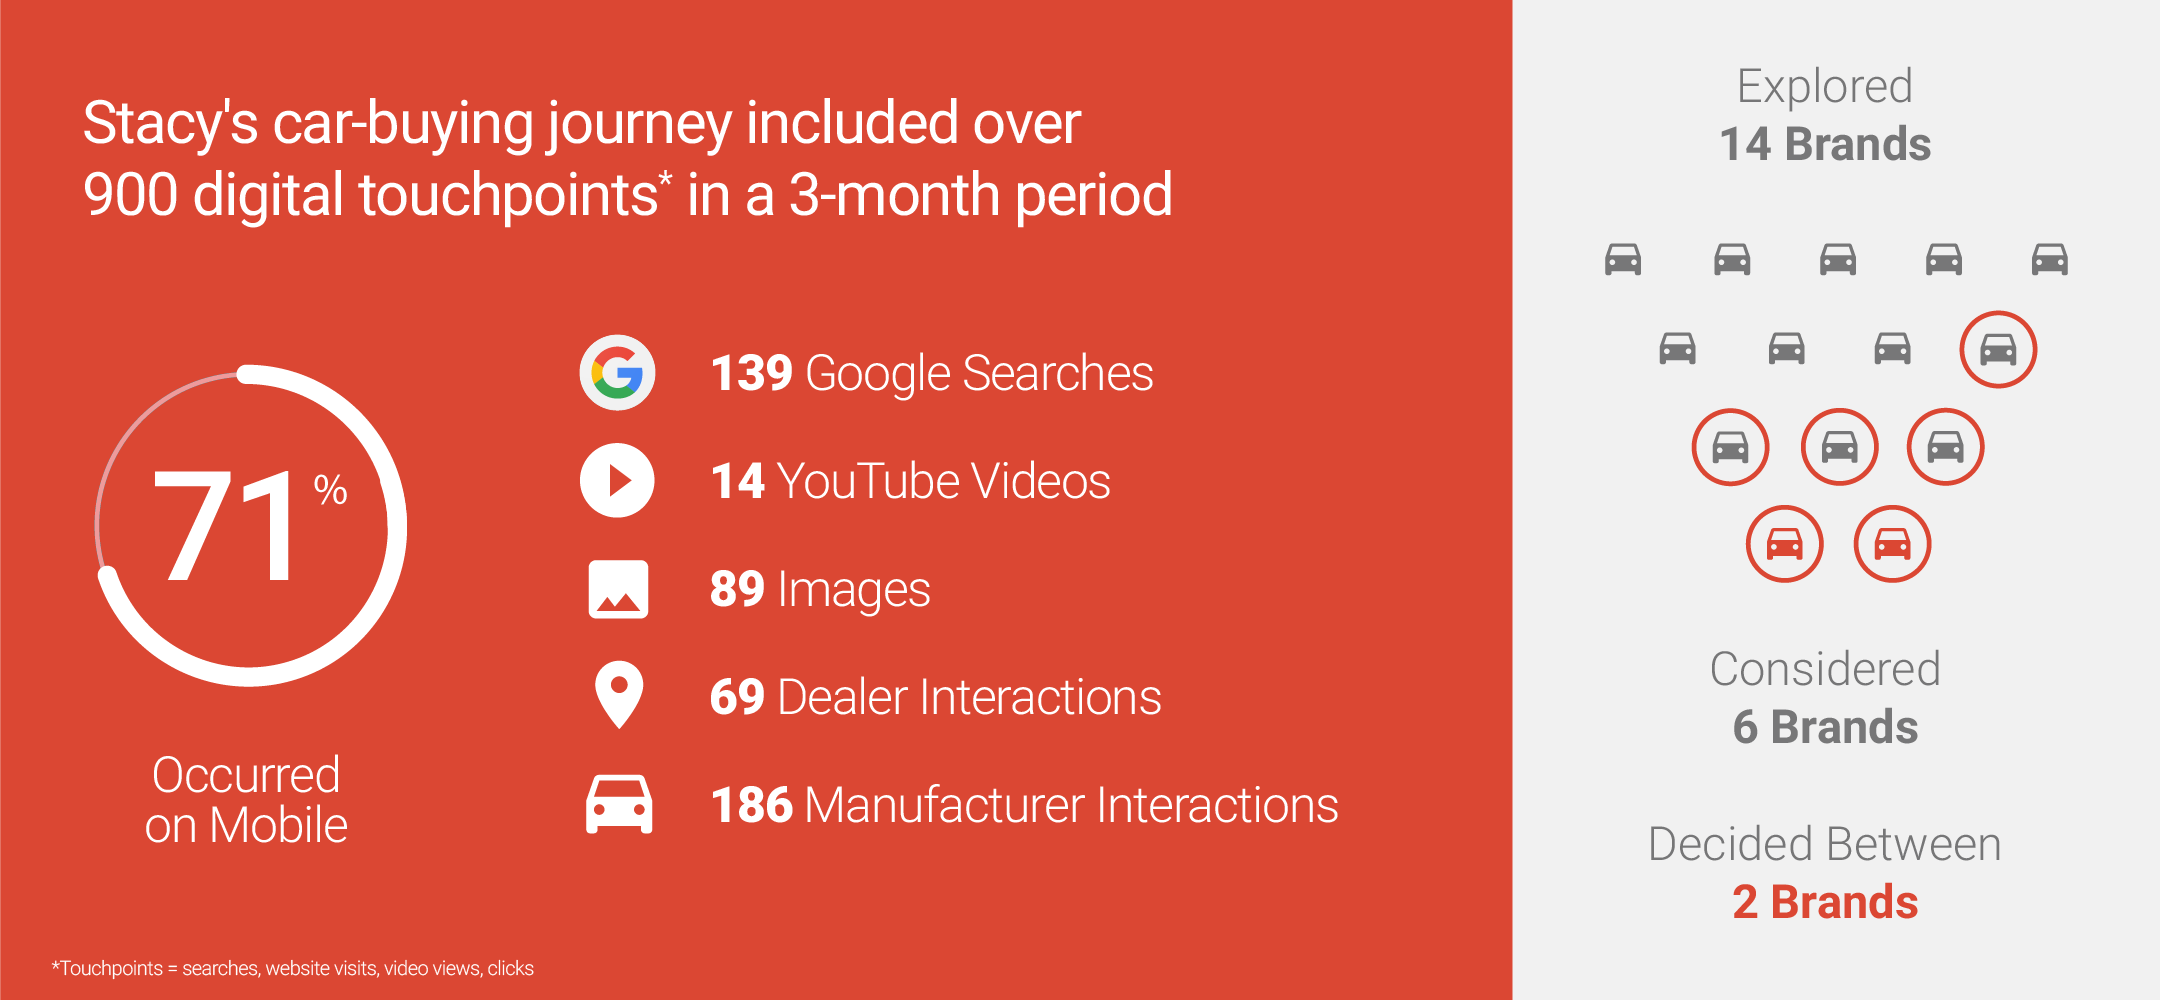 A summarized infographic of the various digital touchpoints in a 3-month period